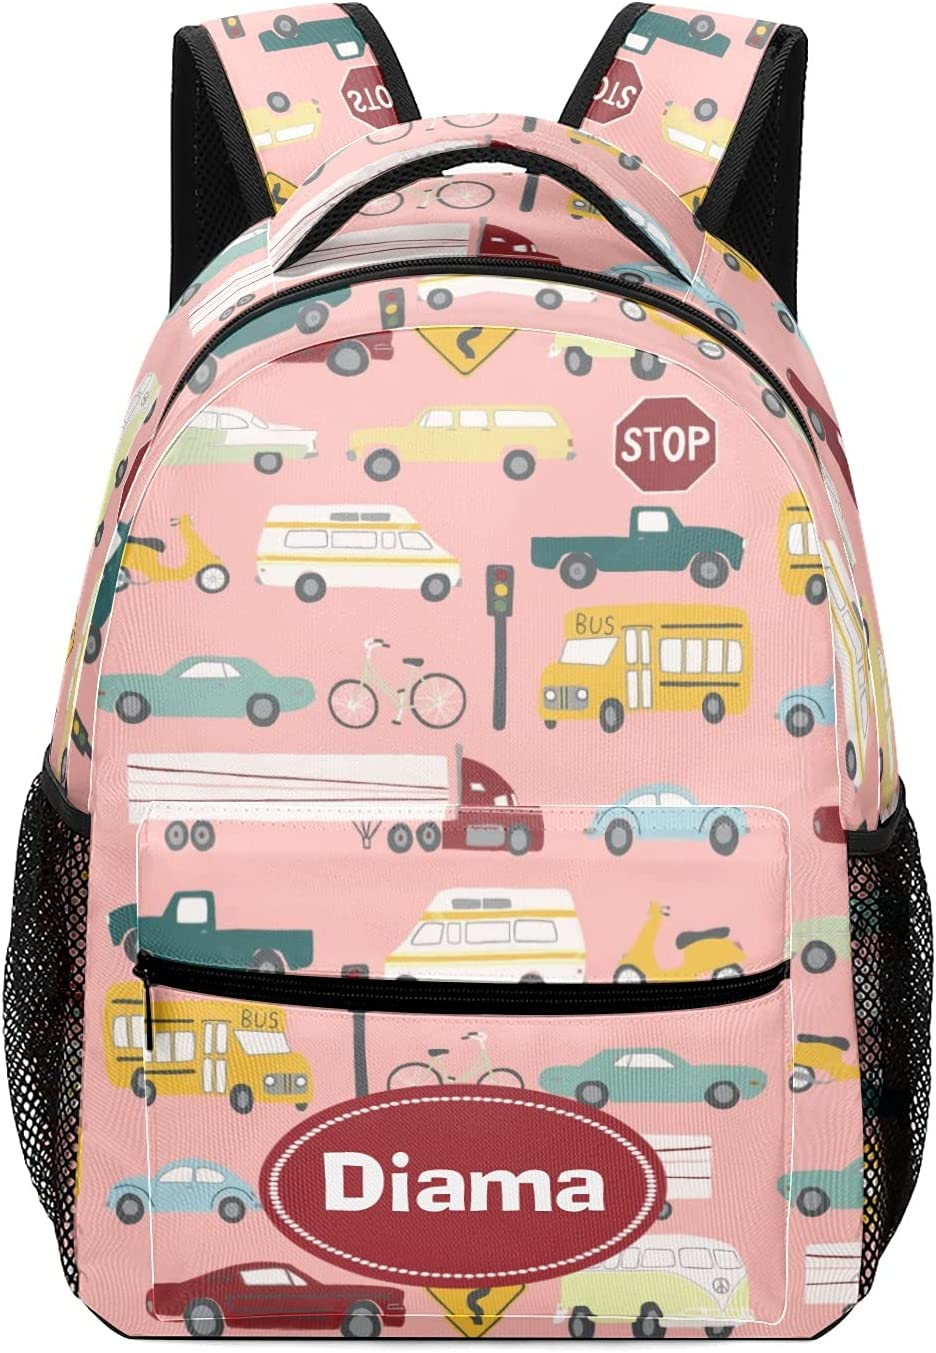 Vroom Traffic Pattern Cars It is very popular Trucks Personalized free shipping School Bus Backp